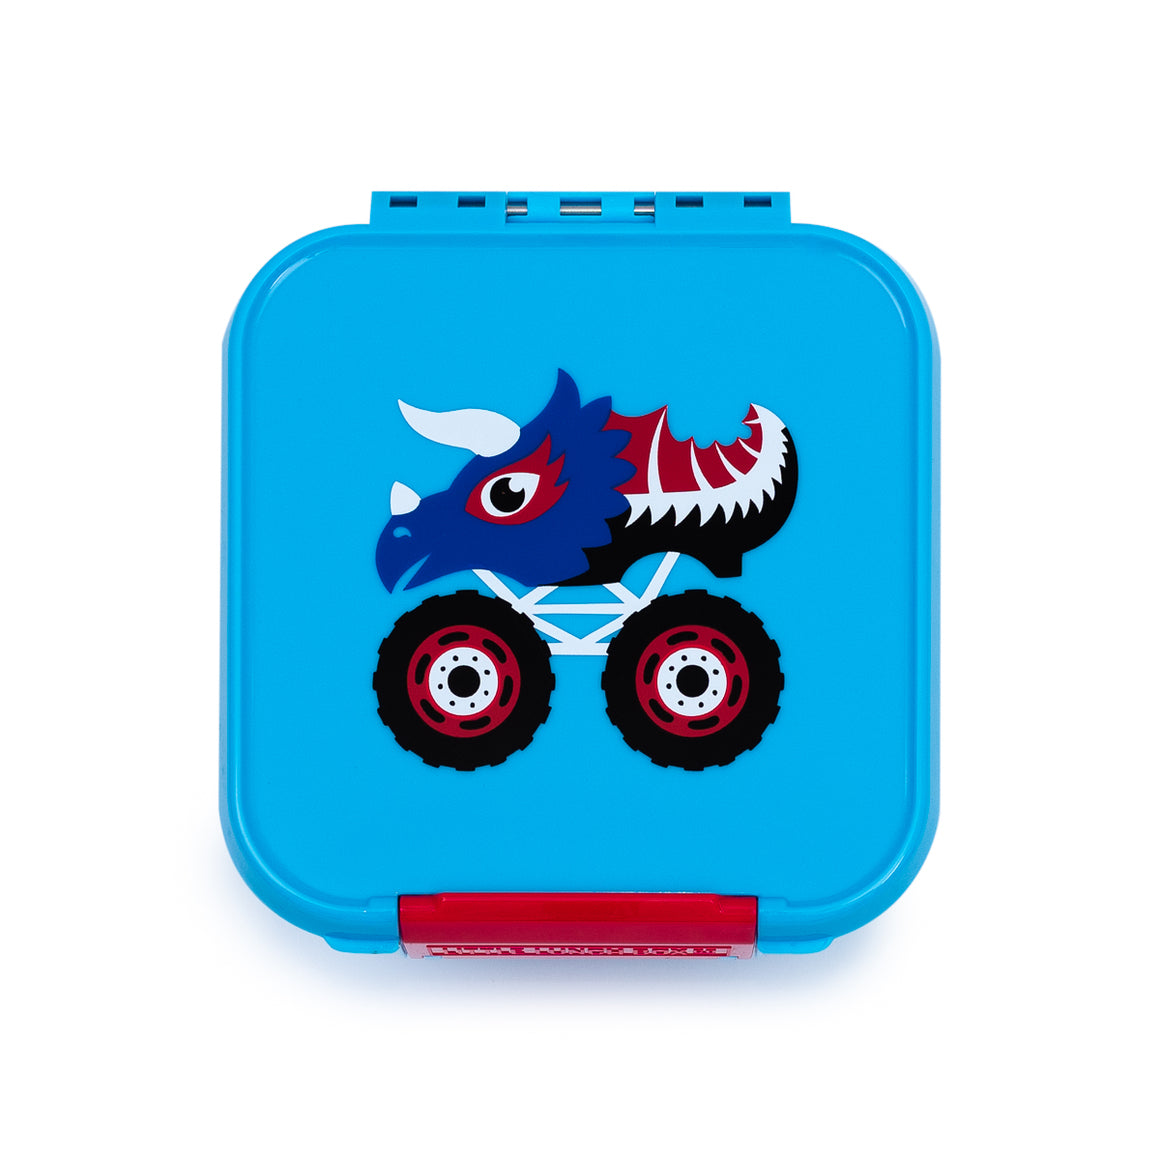 Little Lunch Box Co | Bento 2 - Monster Truck